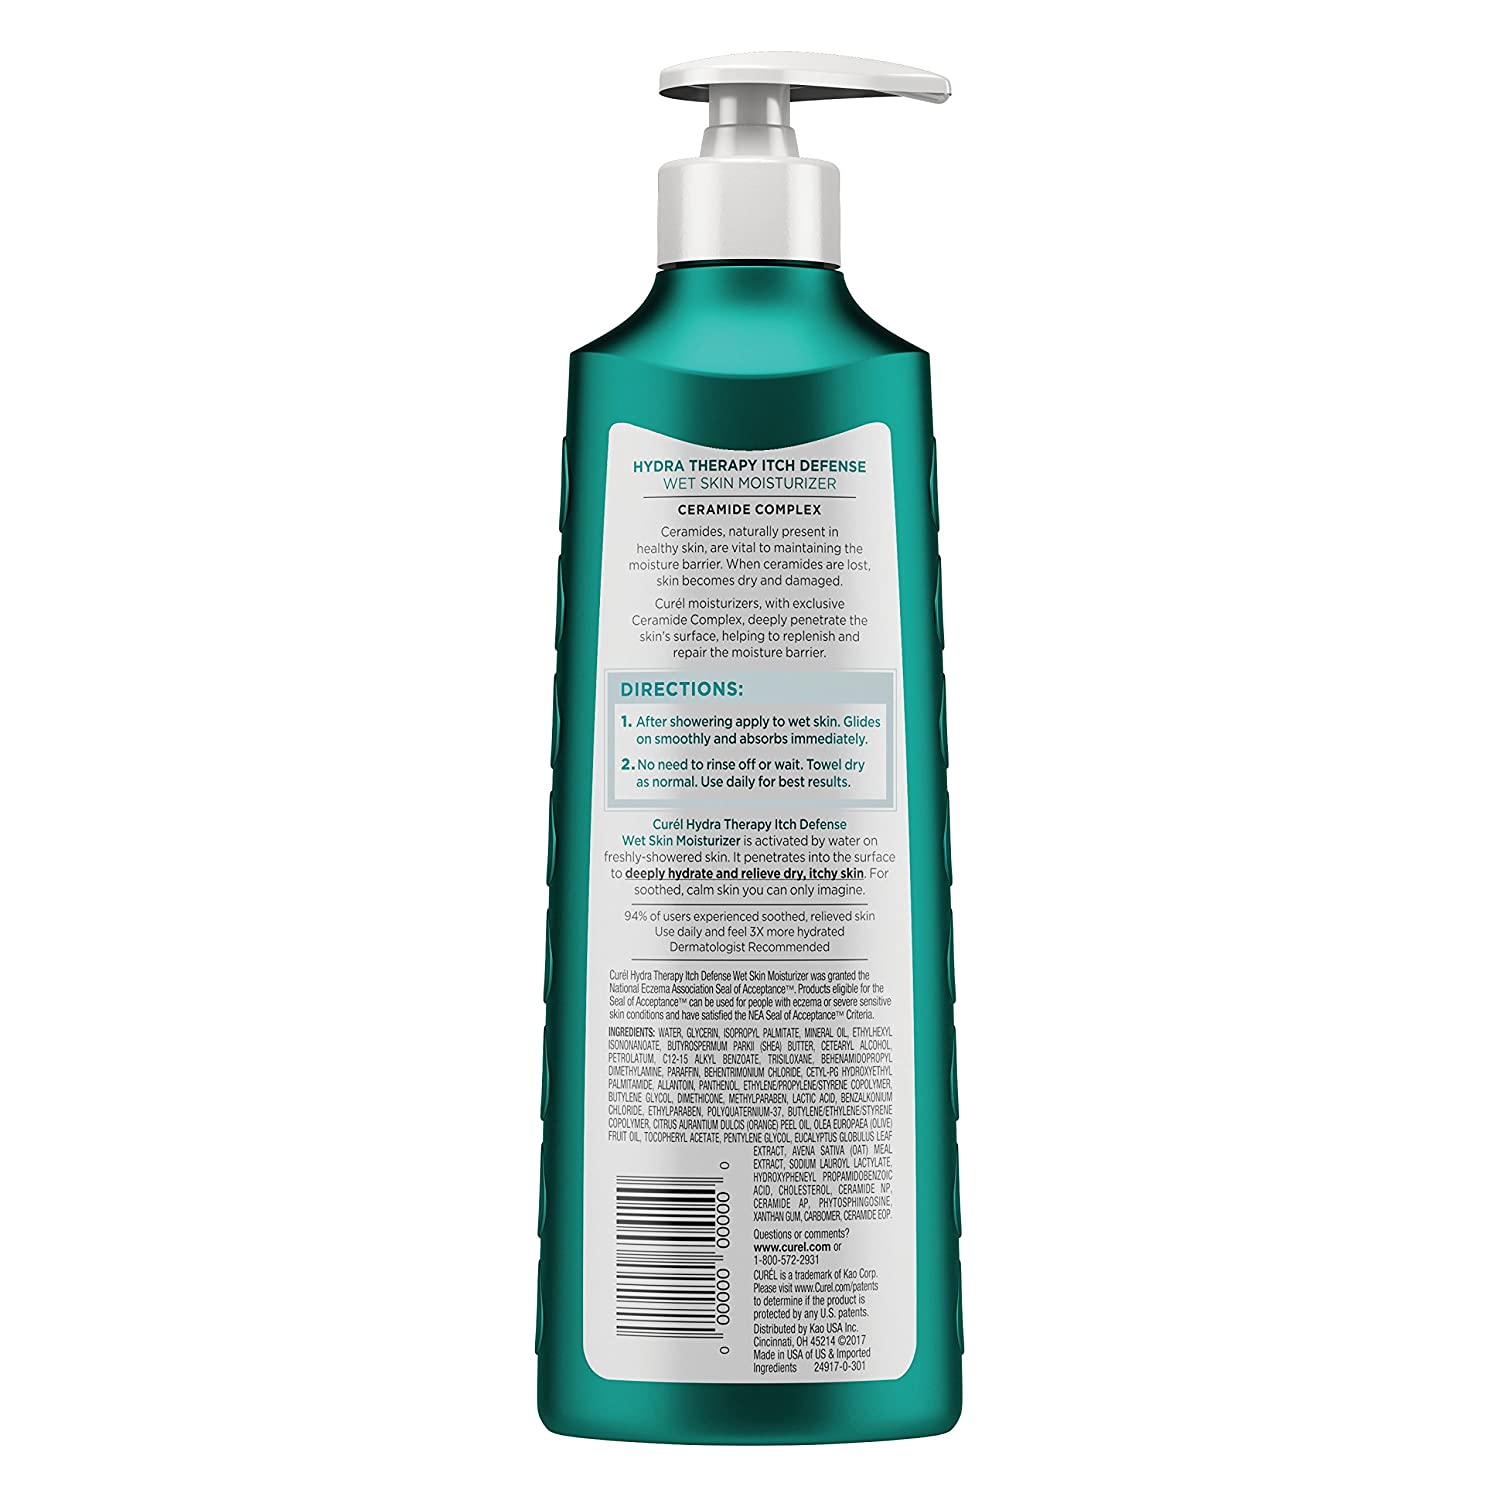 Curél Hydra Therapy, Itch Defense Moisturizer with Curl Itch Defense Body Wash : Beauty